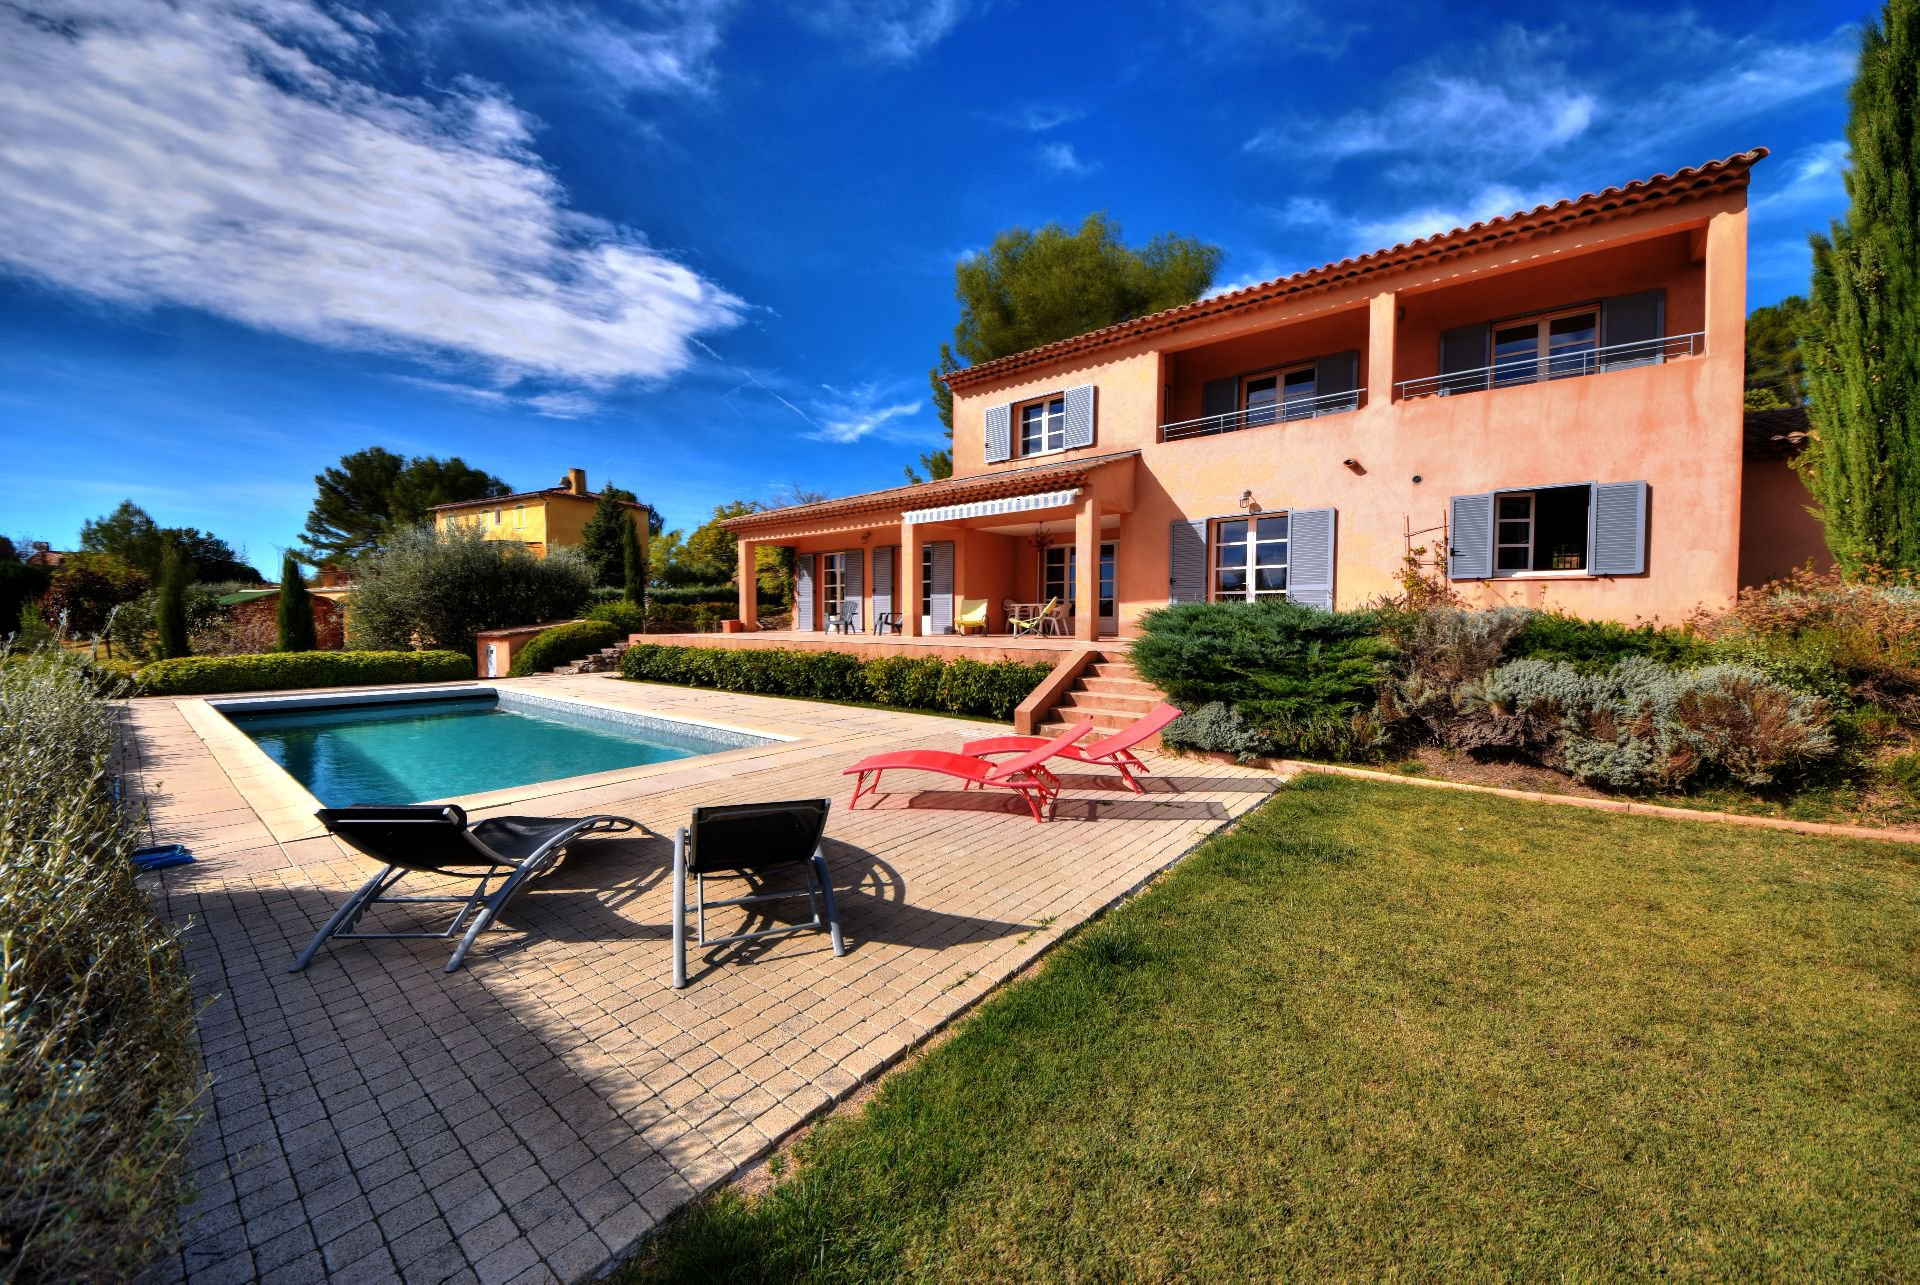 Villecroze, superb house of 200sqm with swimming room